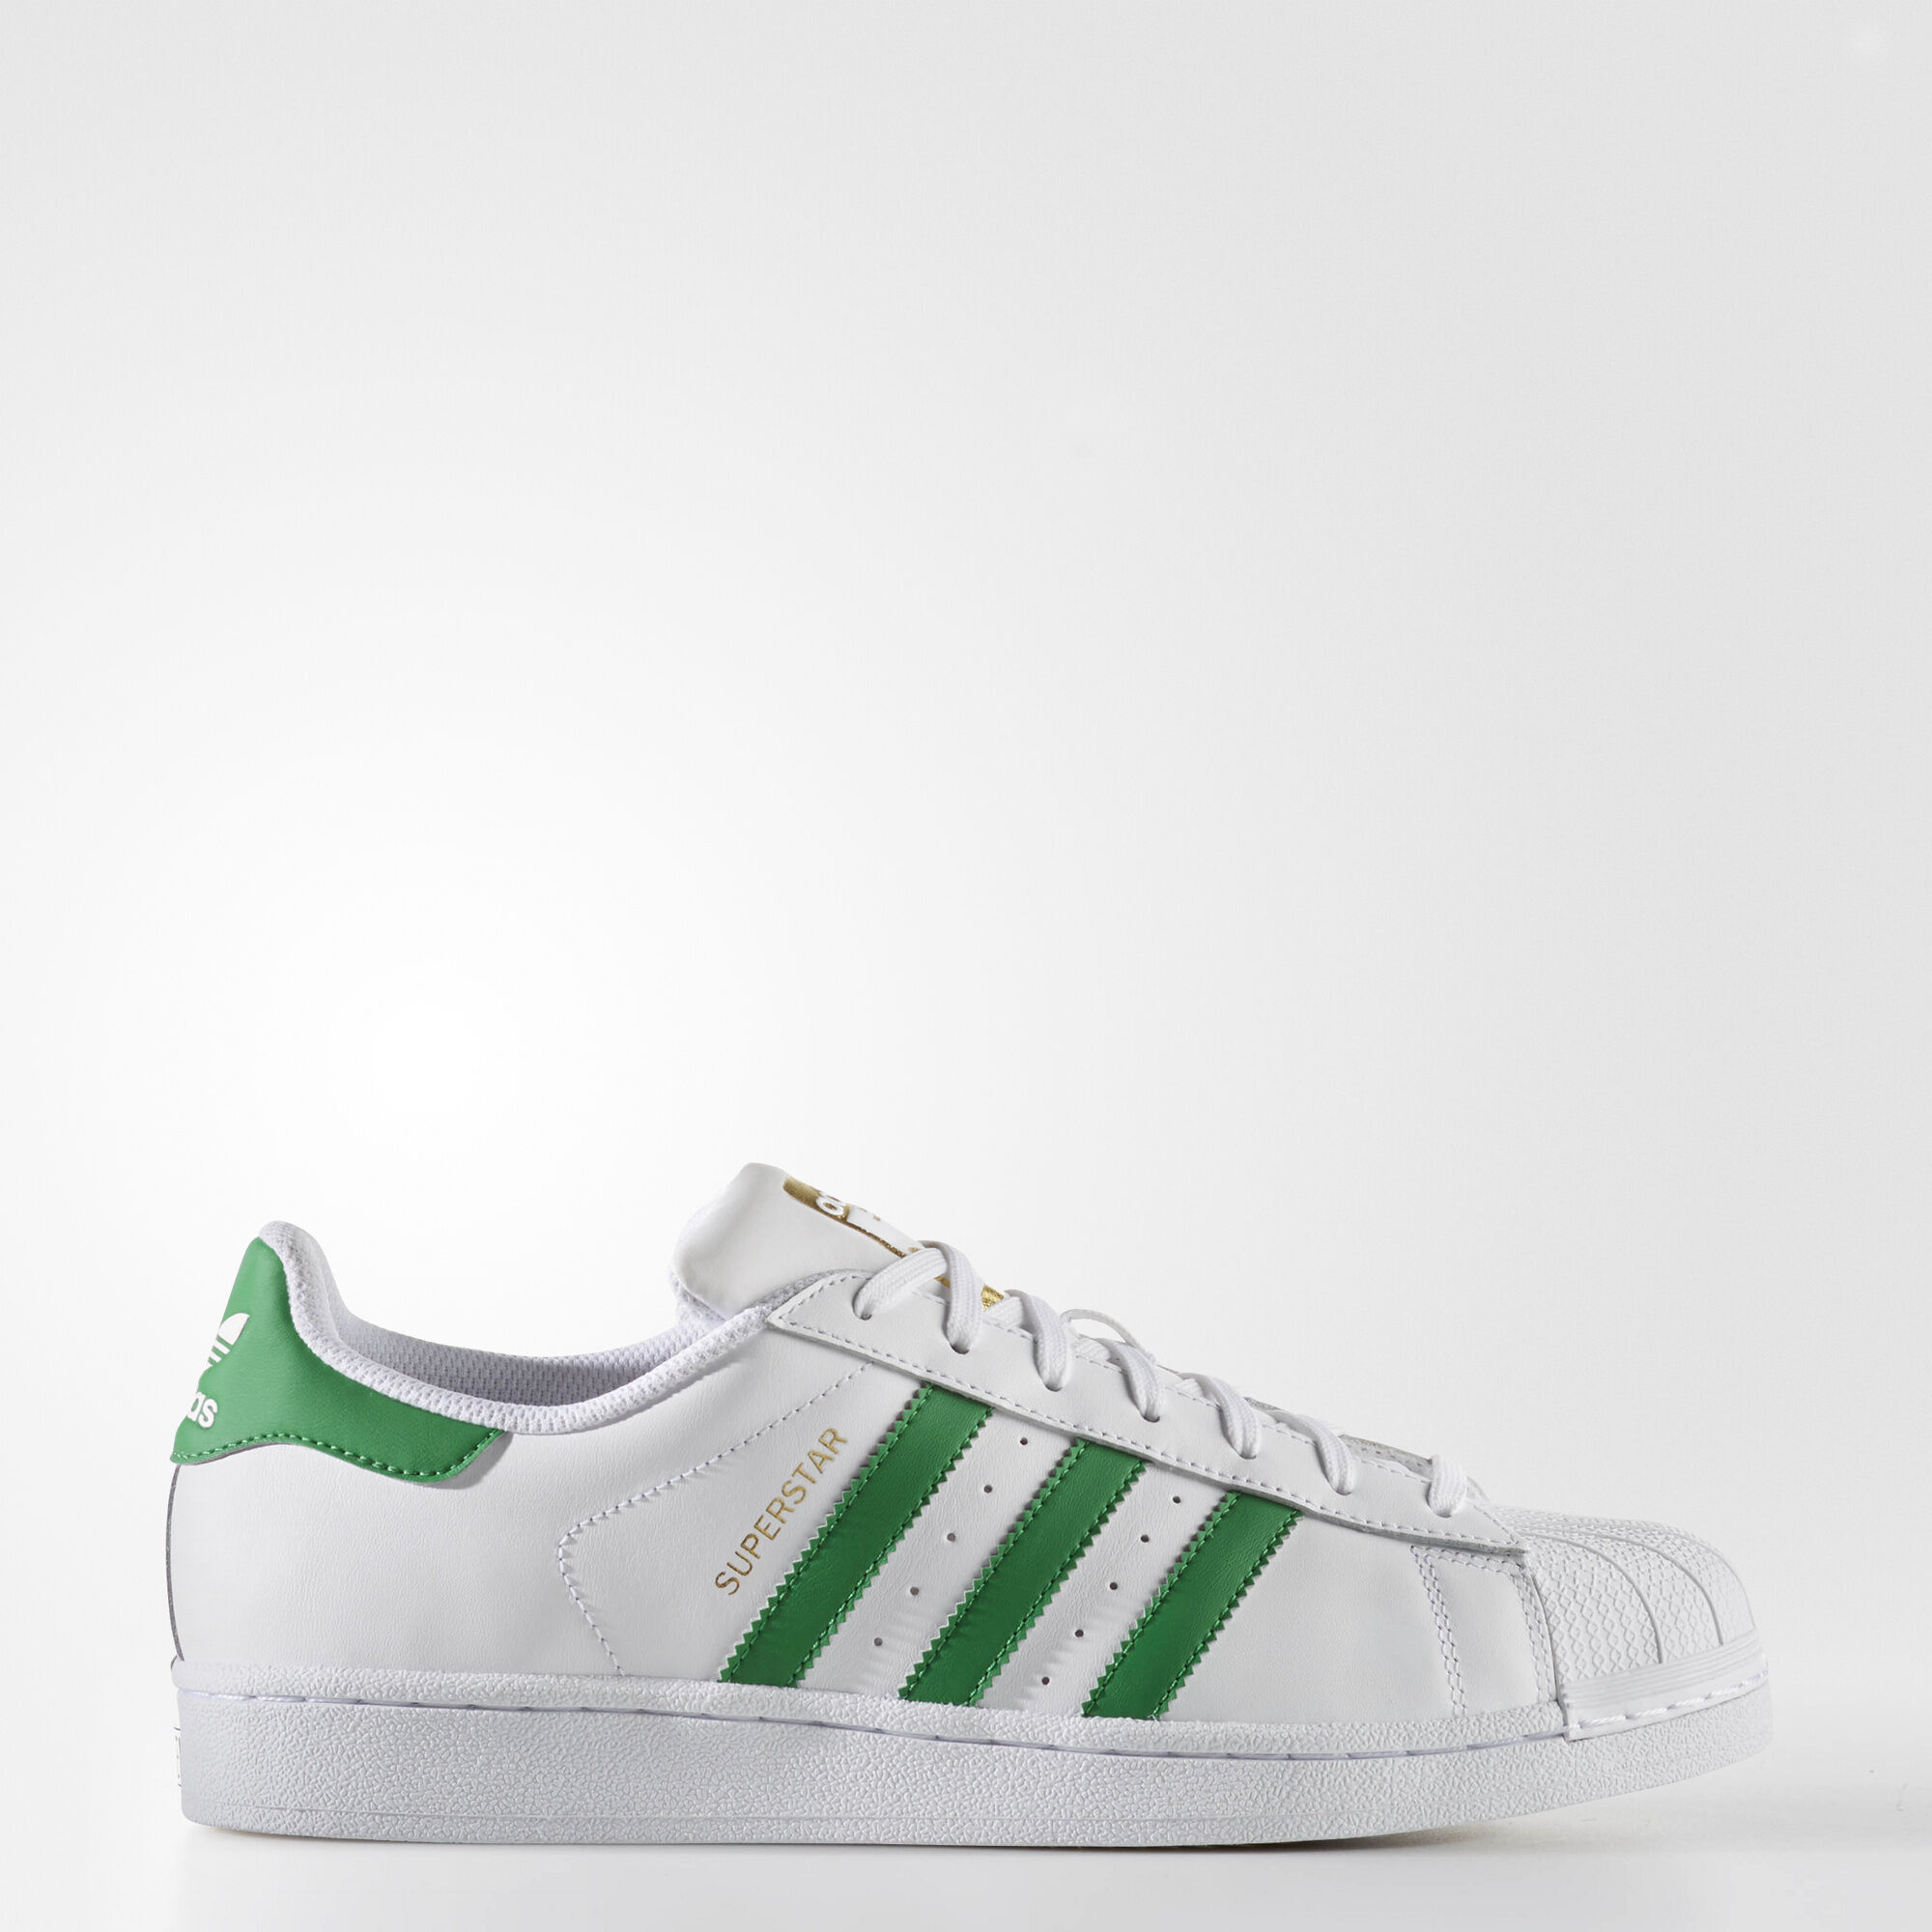 Adidas Superstar Sneakers Men